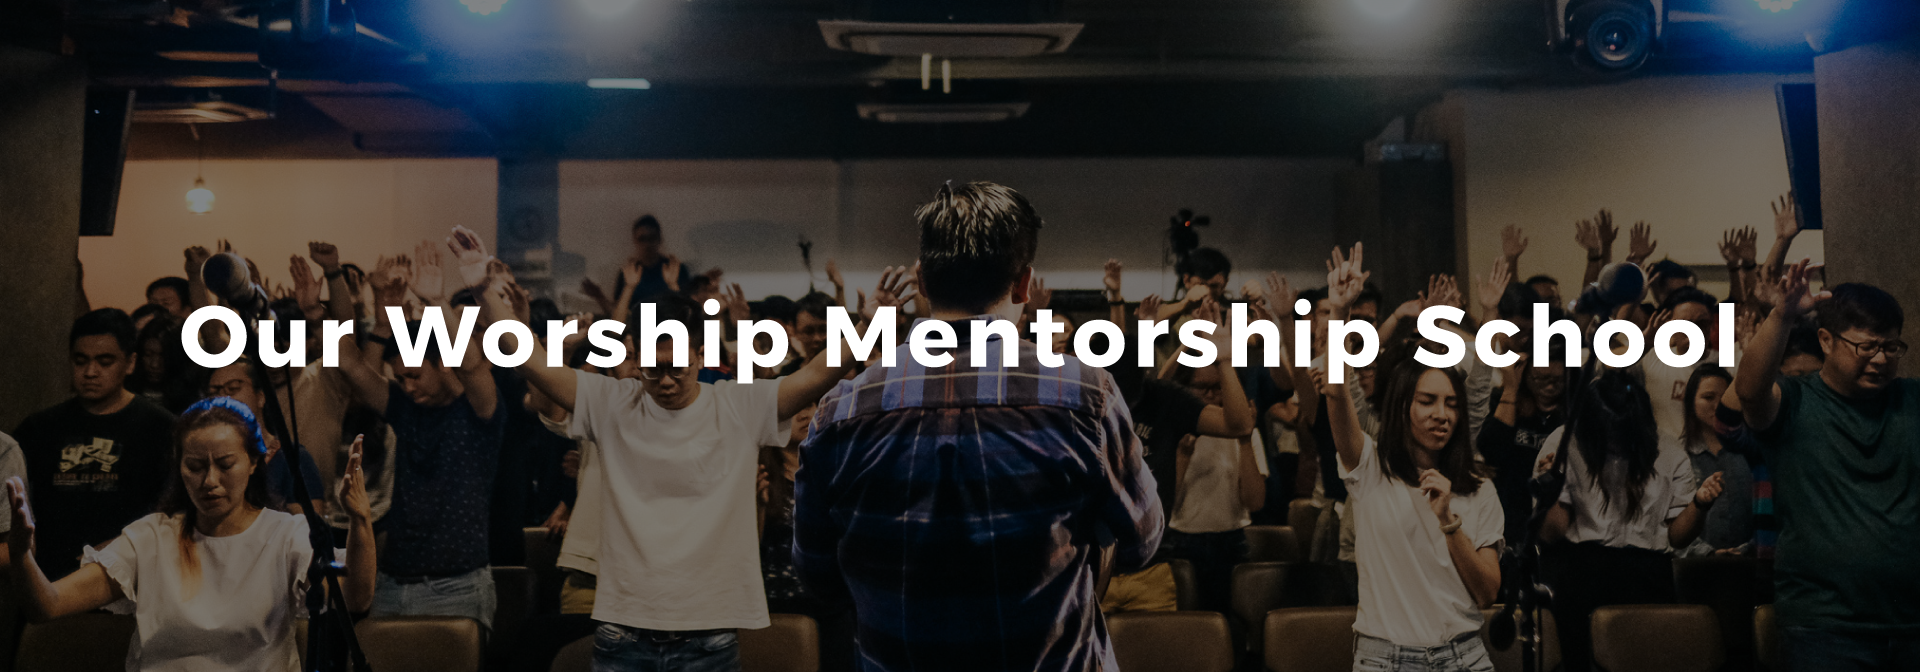 Header-MENTORSHIP-SCHOOL-2.png